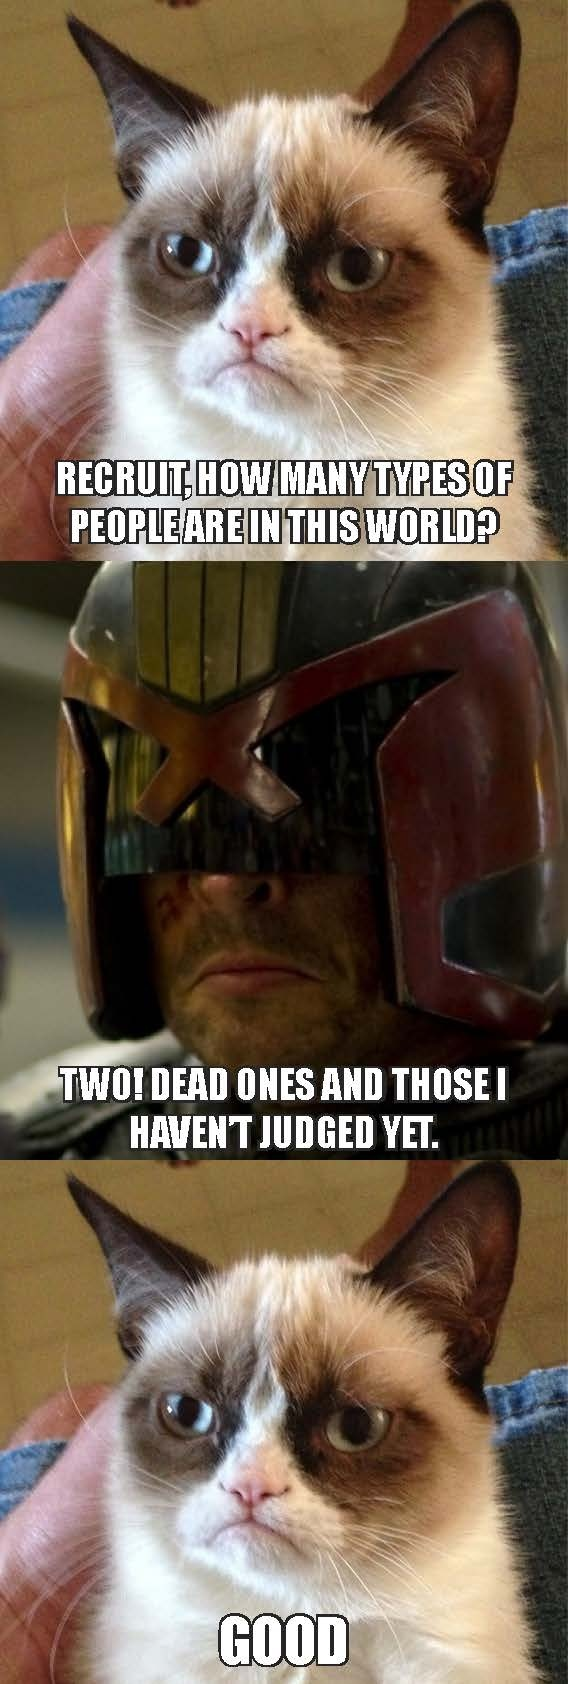 I absolutely loved the new Judge Dredd movie, but got the giggles in between cause he reminded me of Grumpy Cat.